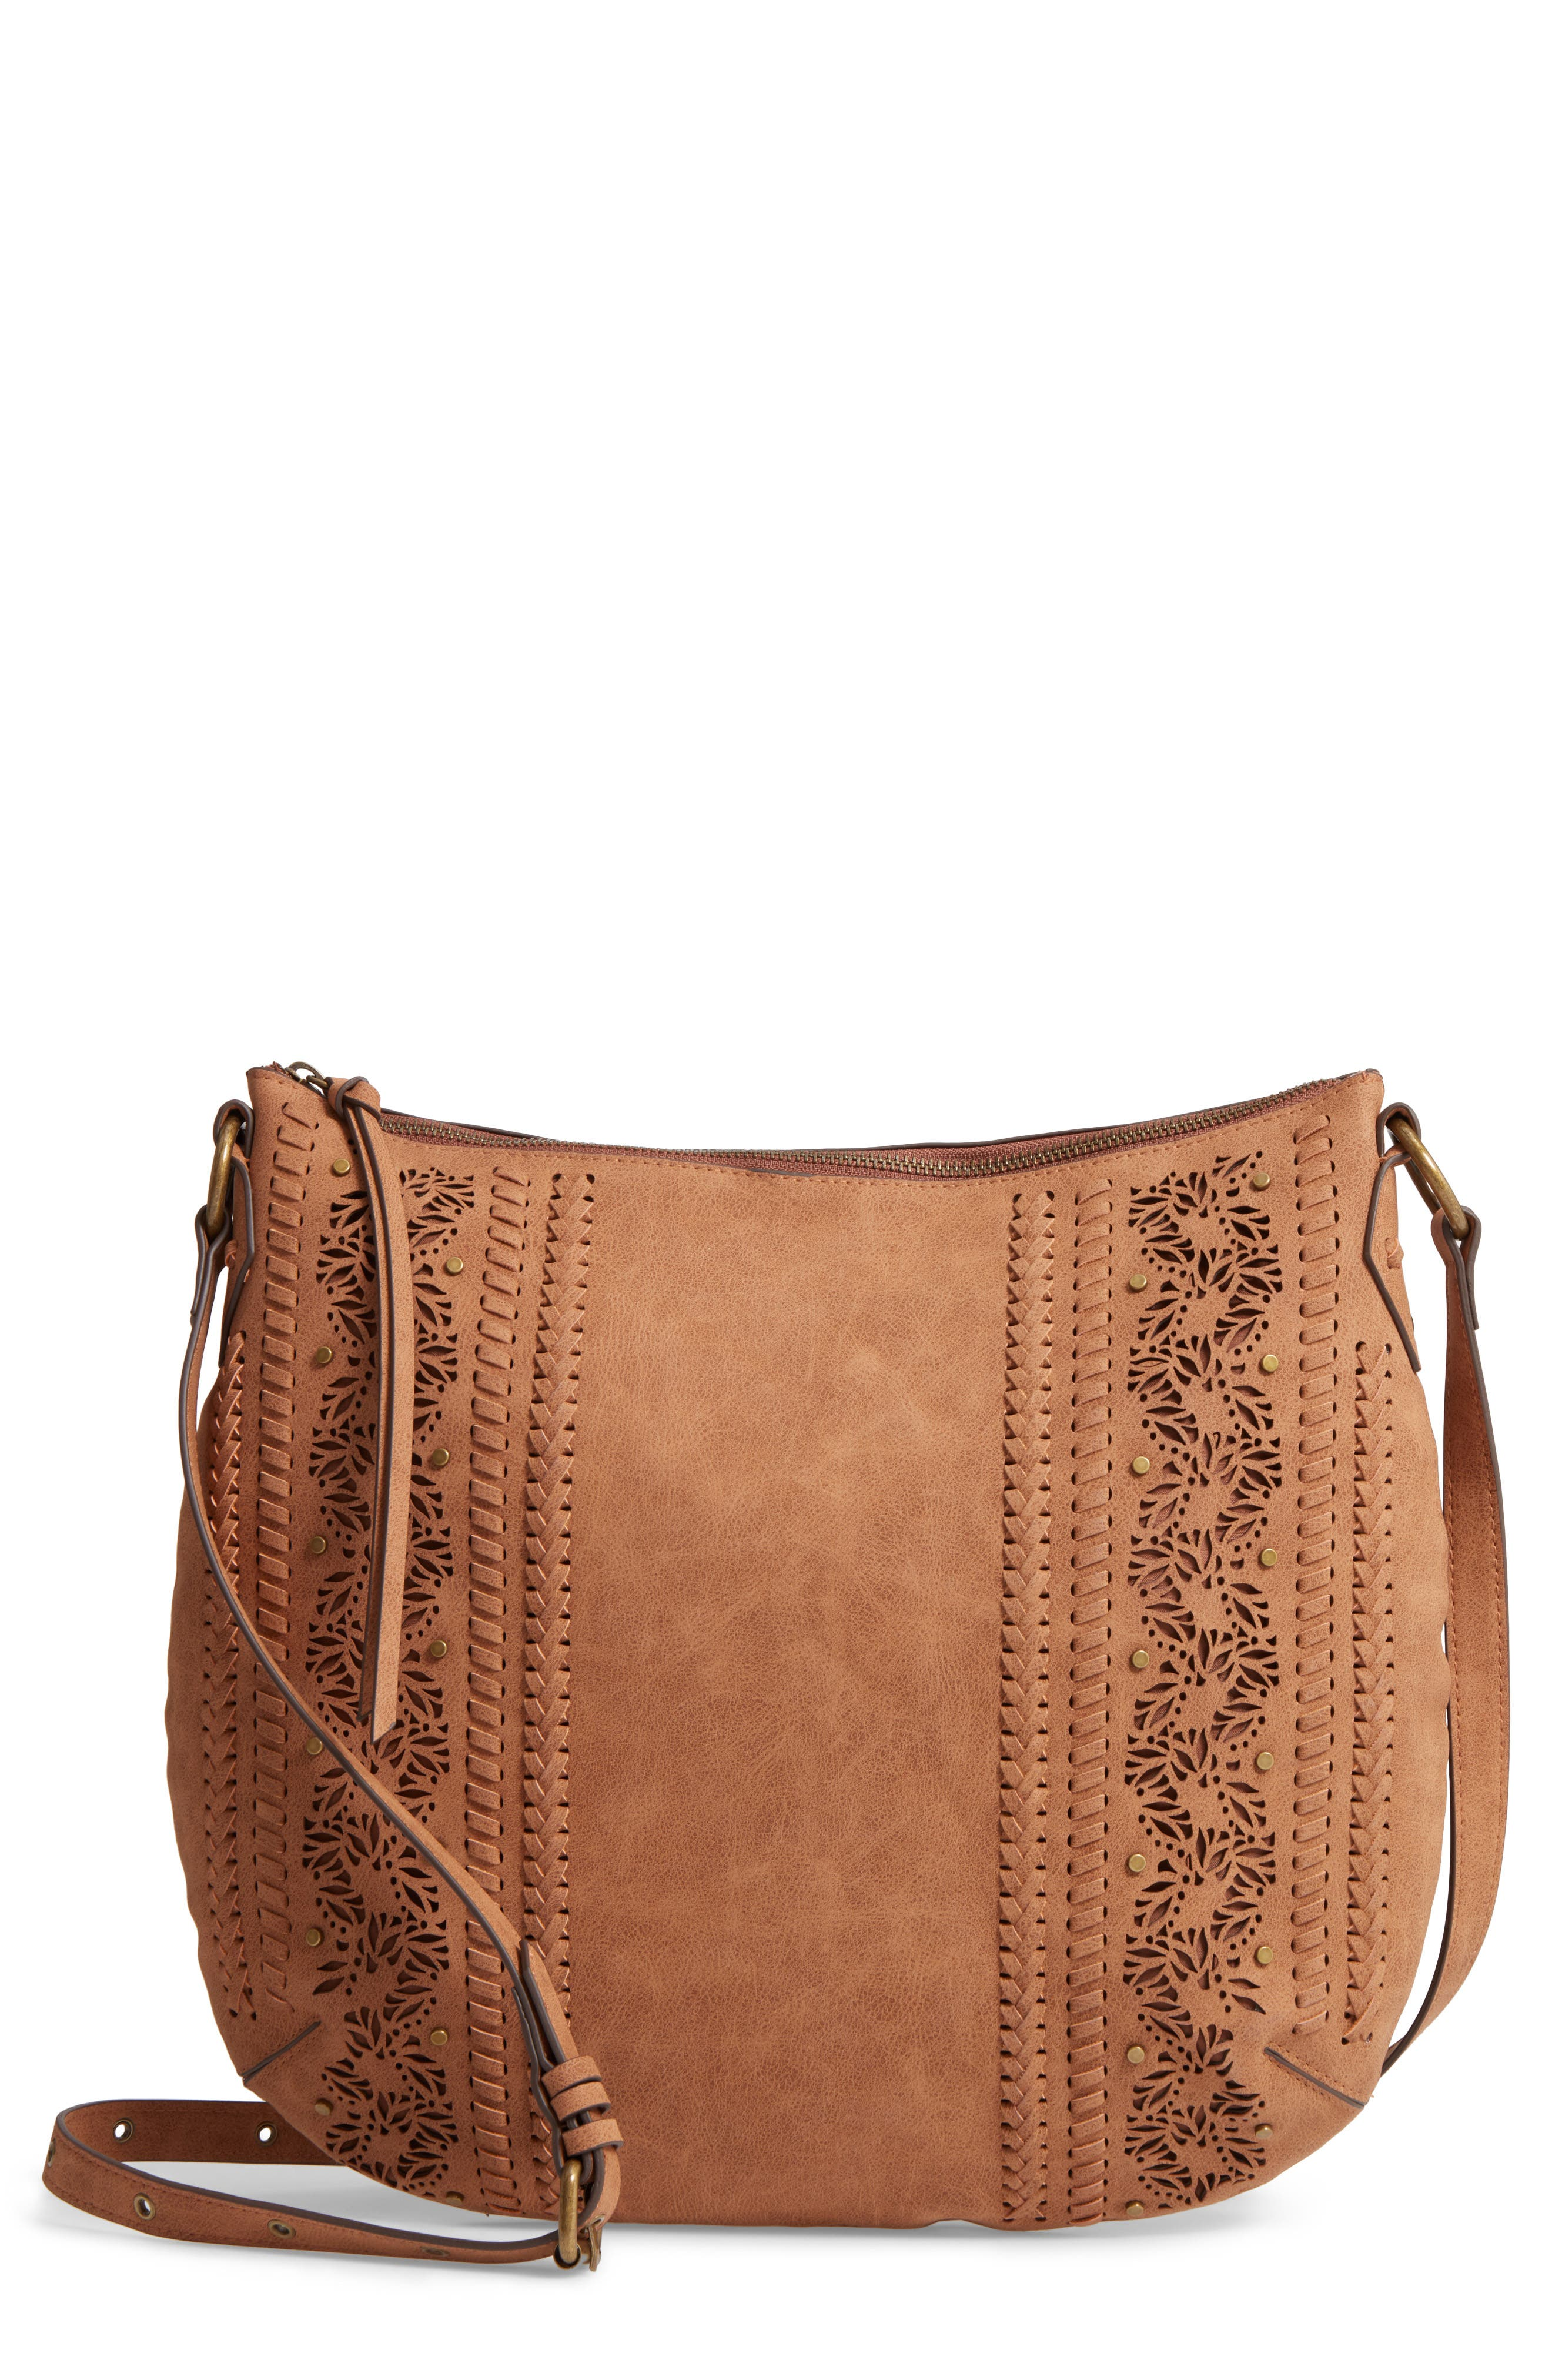 Elle & Jae Gypset Palomina Faux Leather Crossbody Hobo